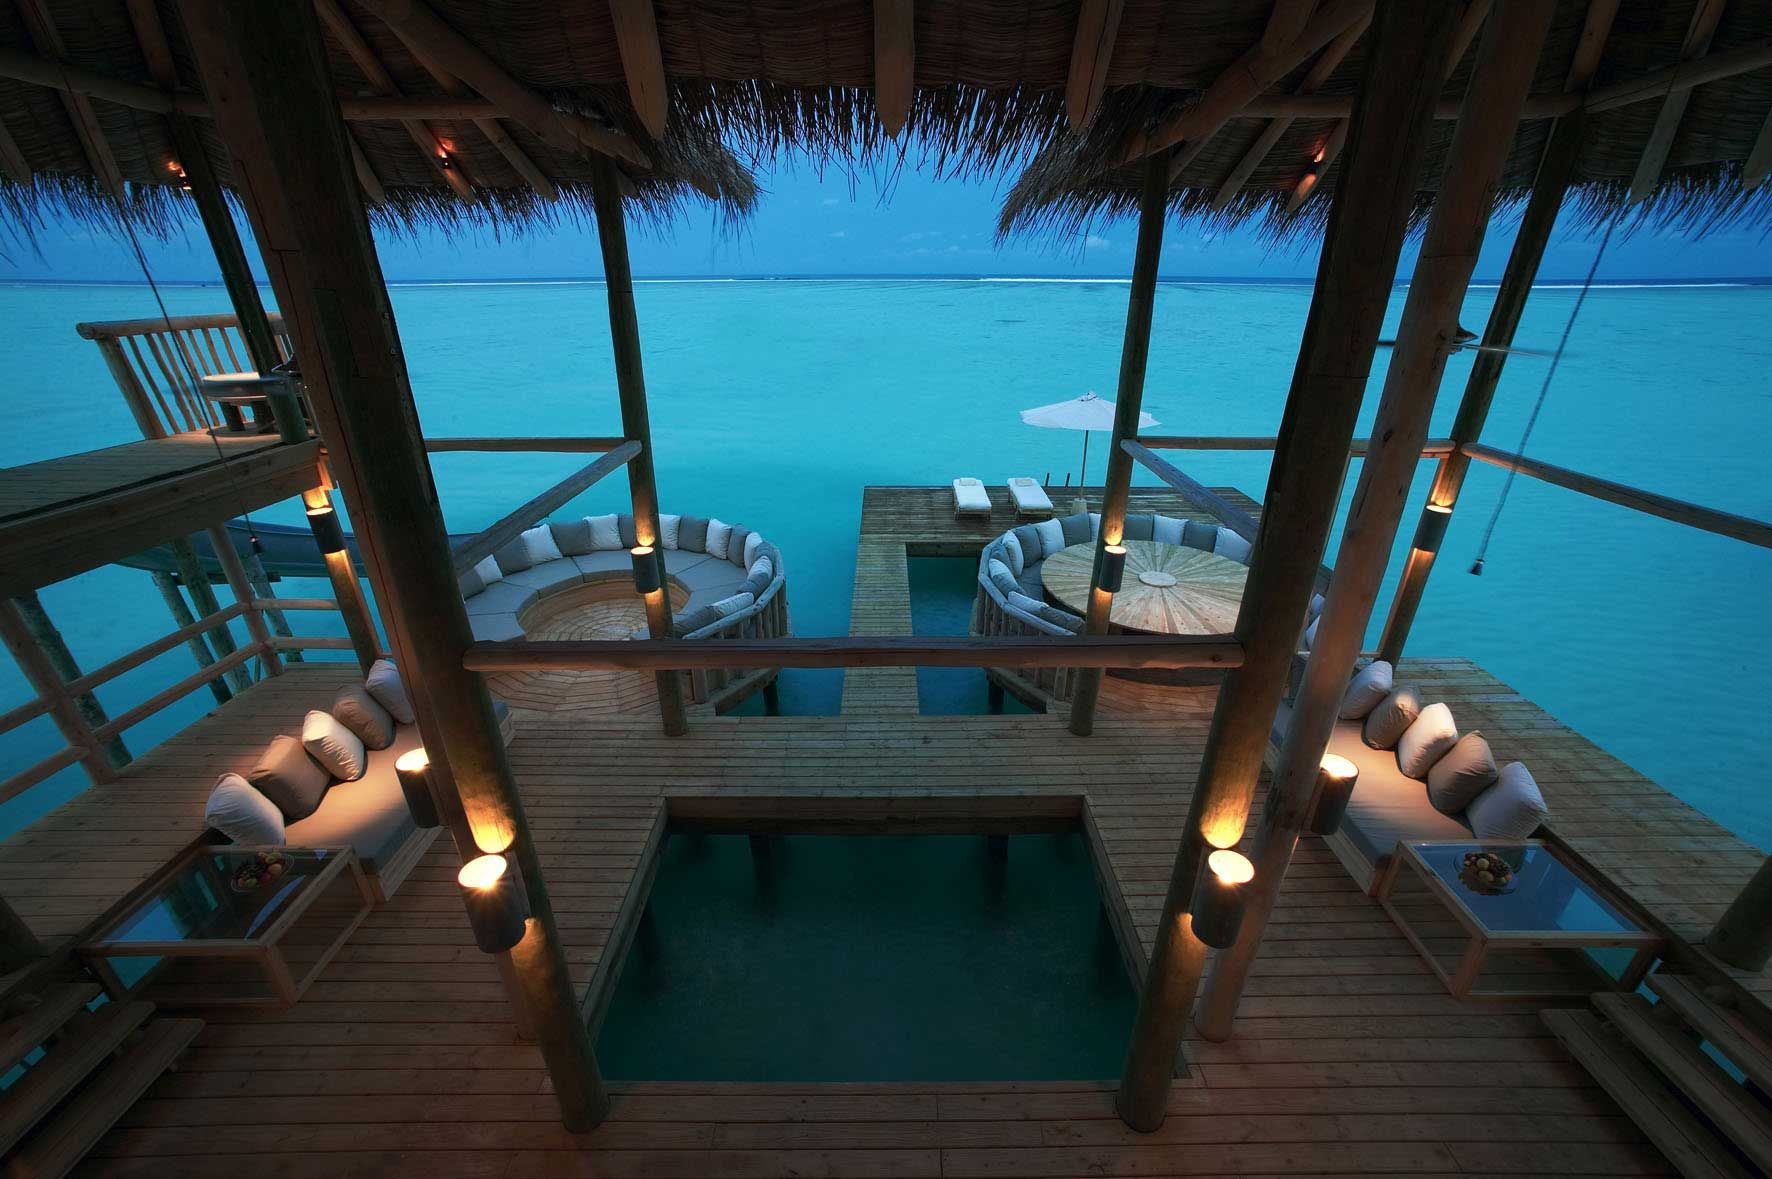 Largest private overwater bungalow in the world.